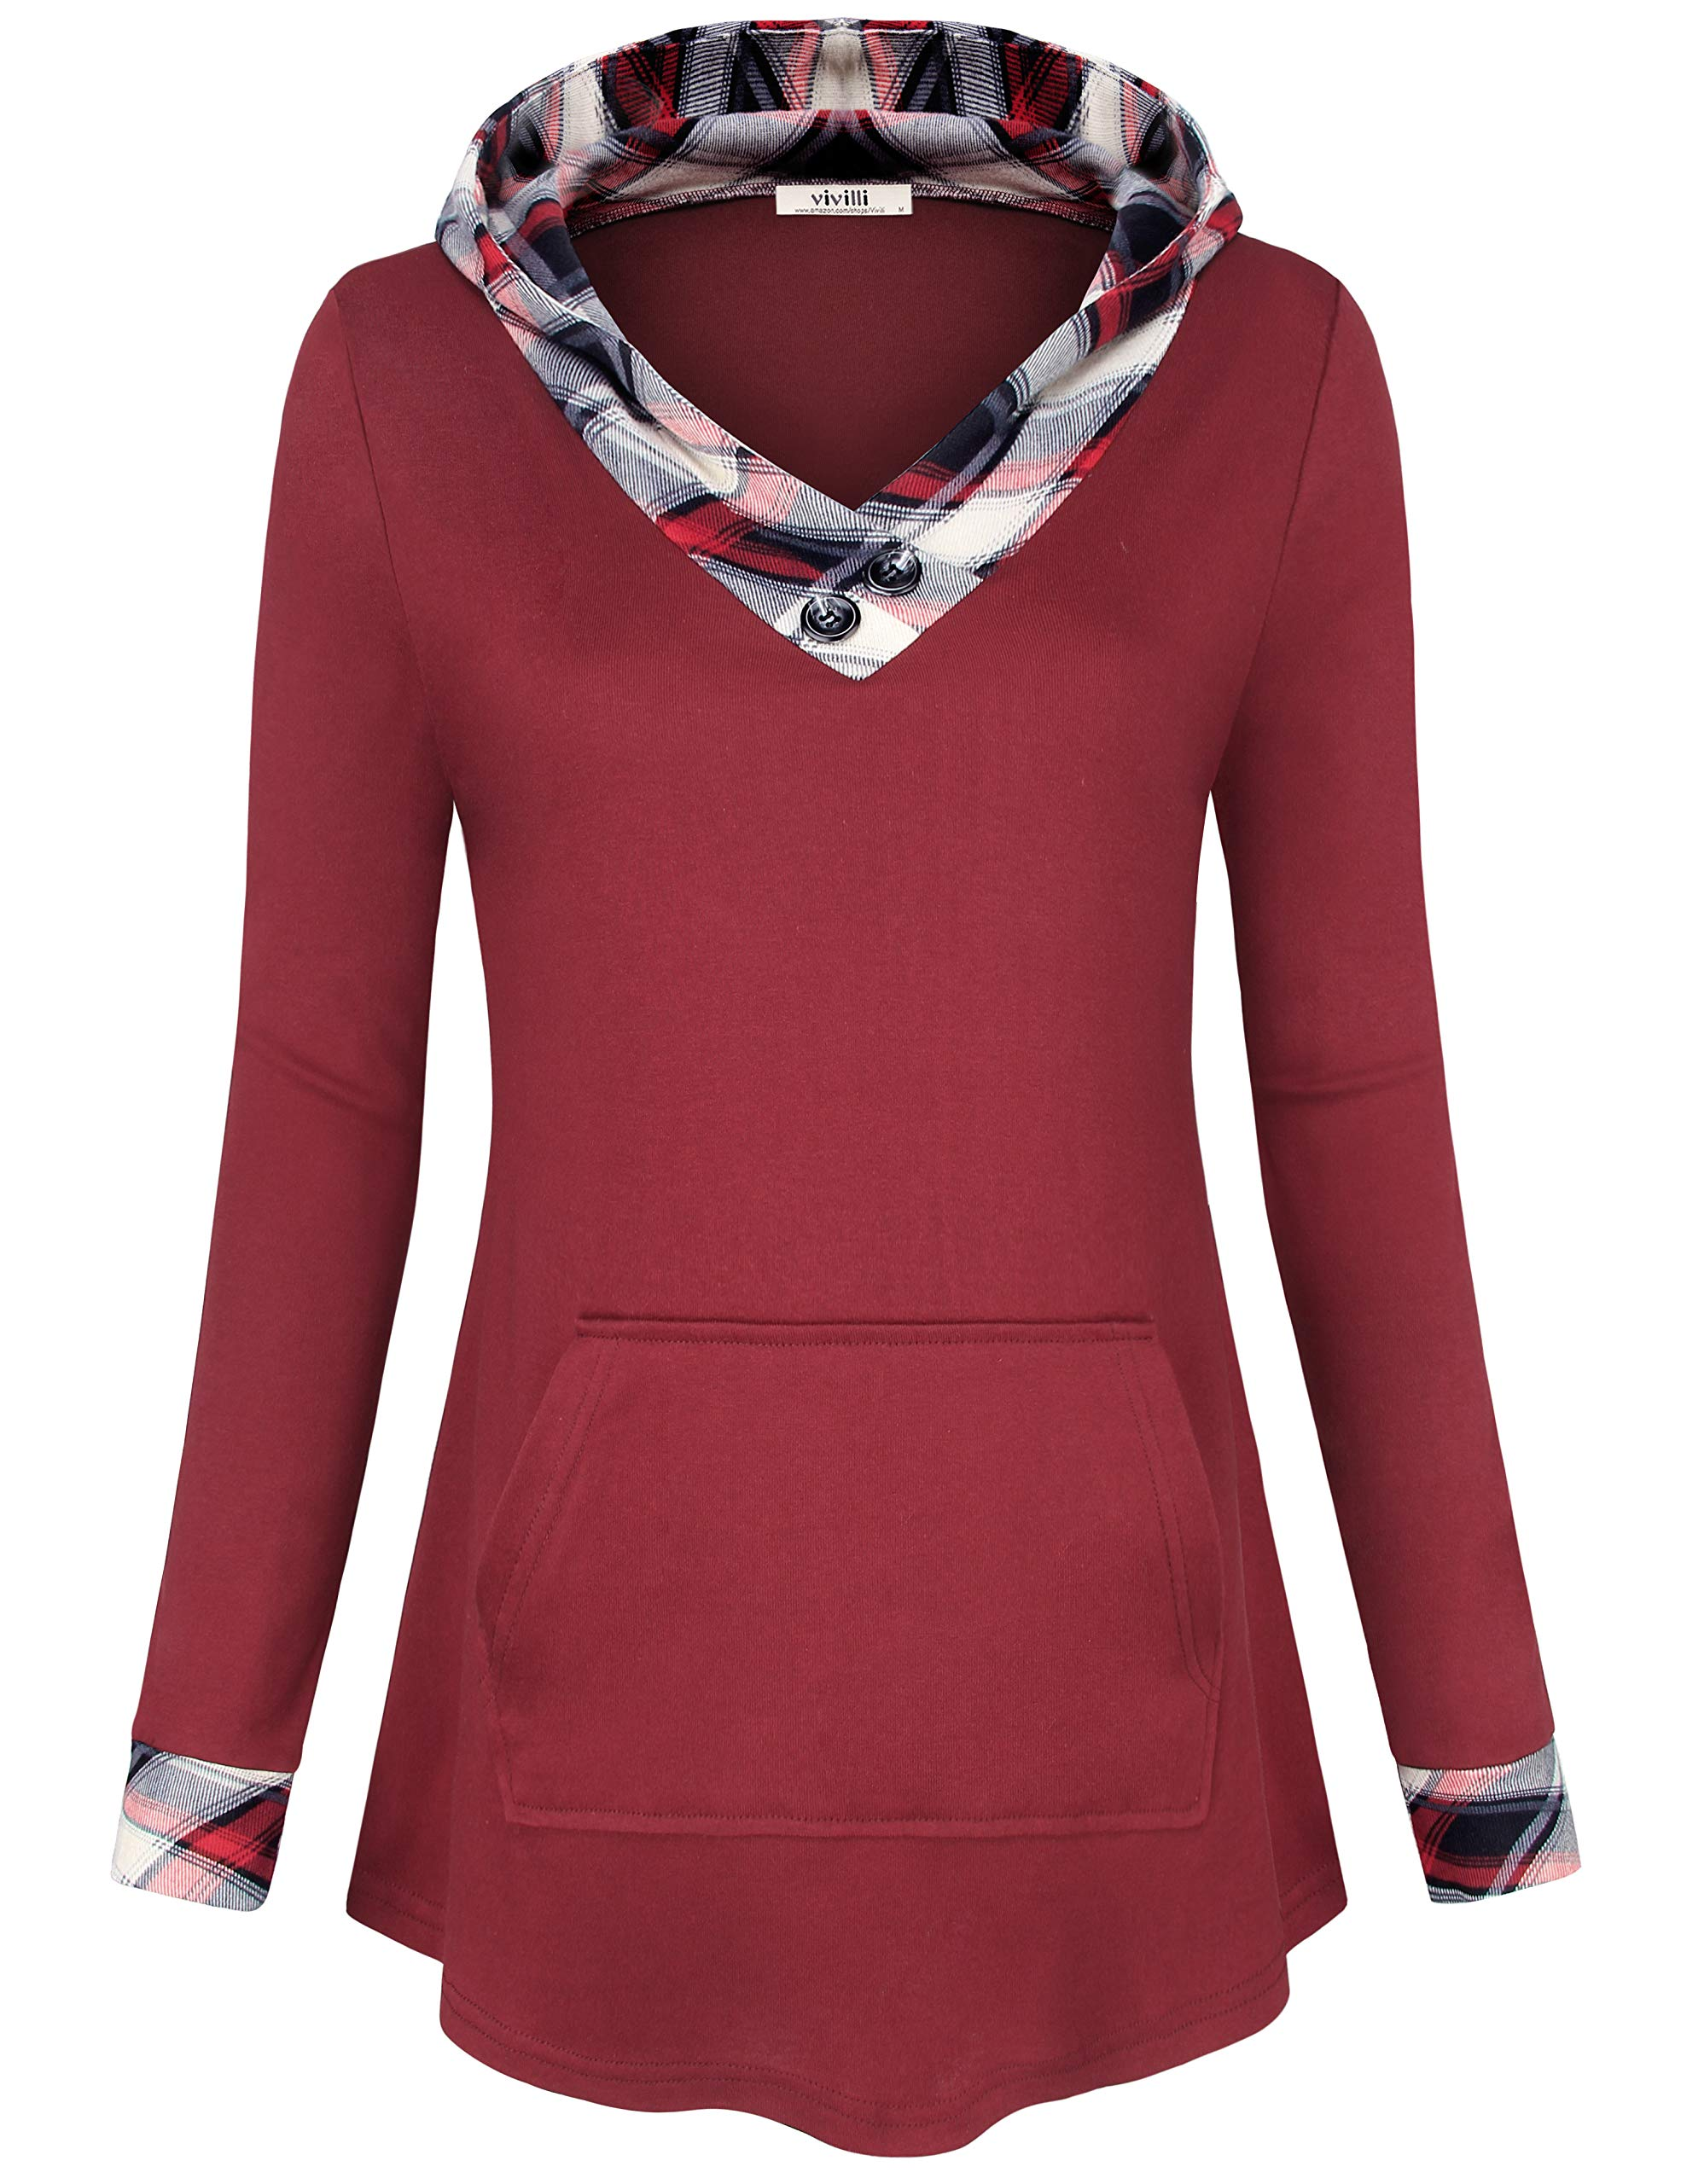 Vivilli Long Sleeve Sweatshirts, Women's 2018 Fashion Flowy Tunic Fit and Flare Shirts for Leggings Knitted Sweater L Wine